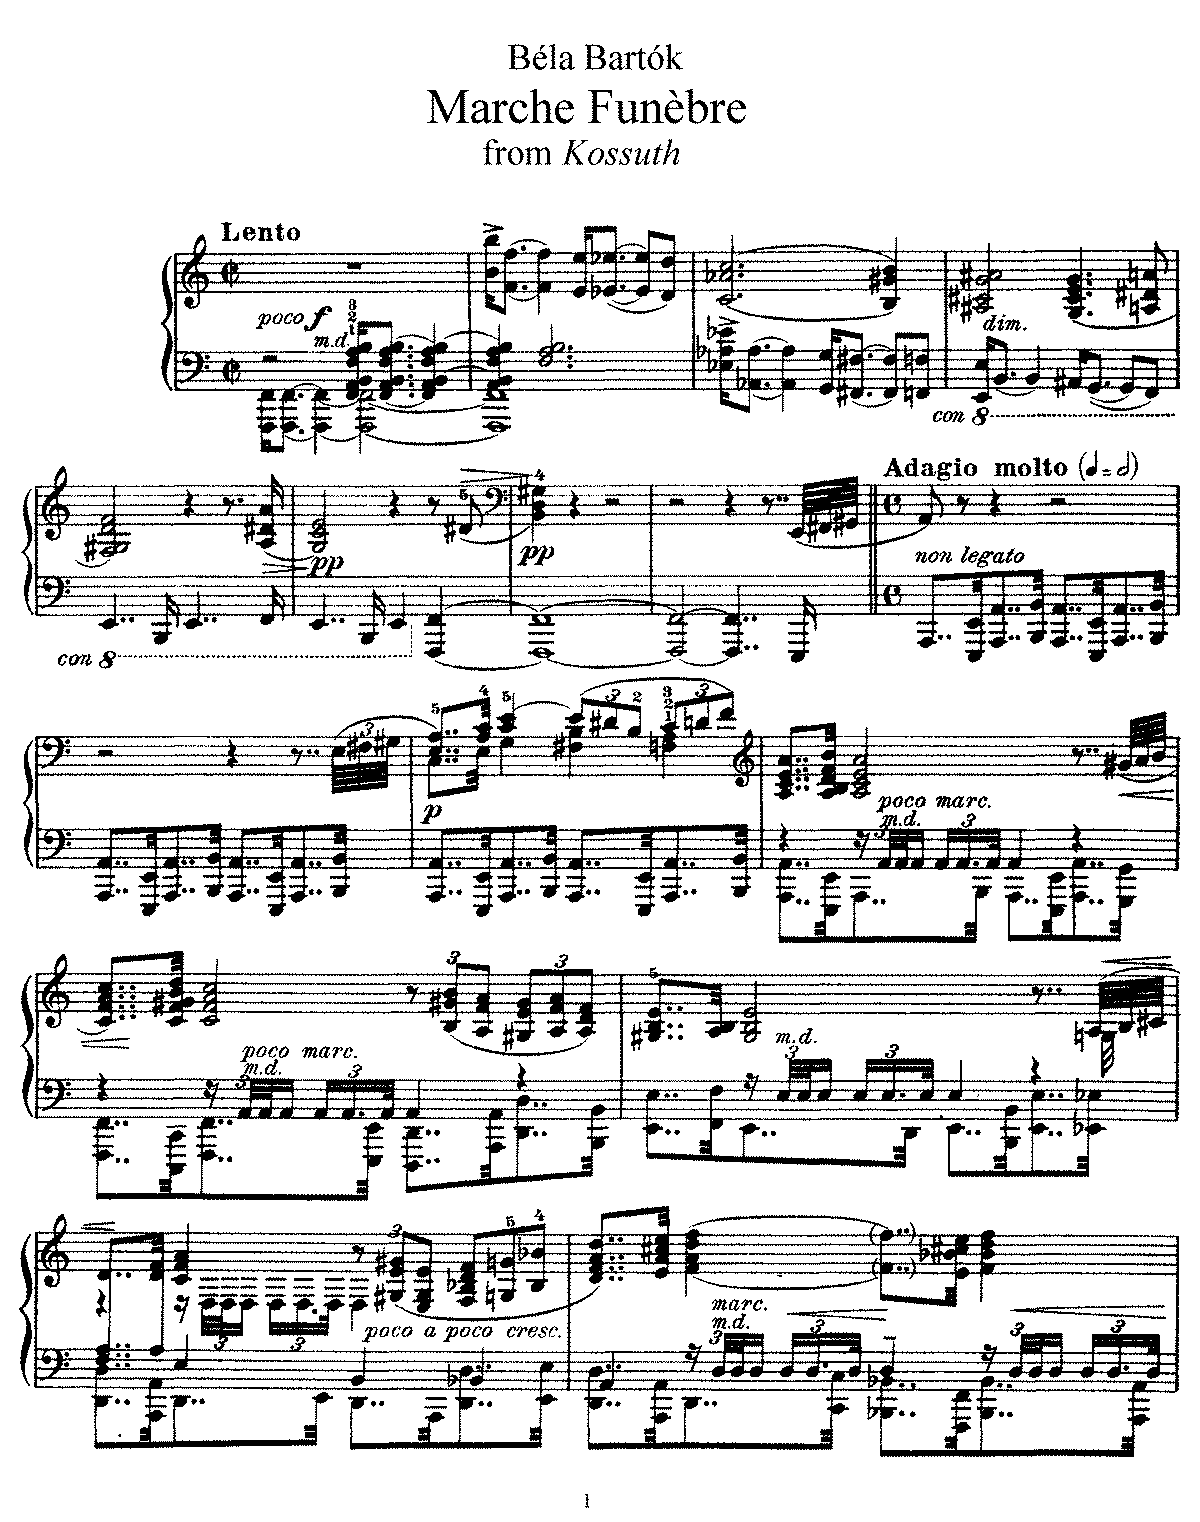 Bartok - DD.75b - March Funebre (from Kossuth).pdf